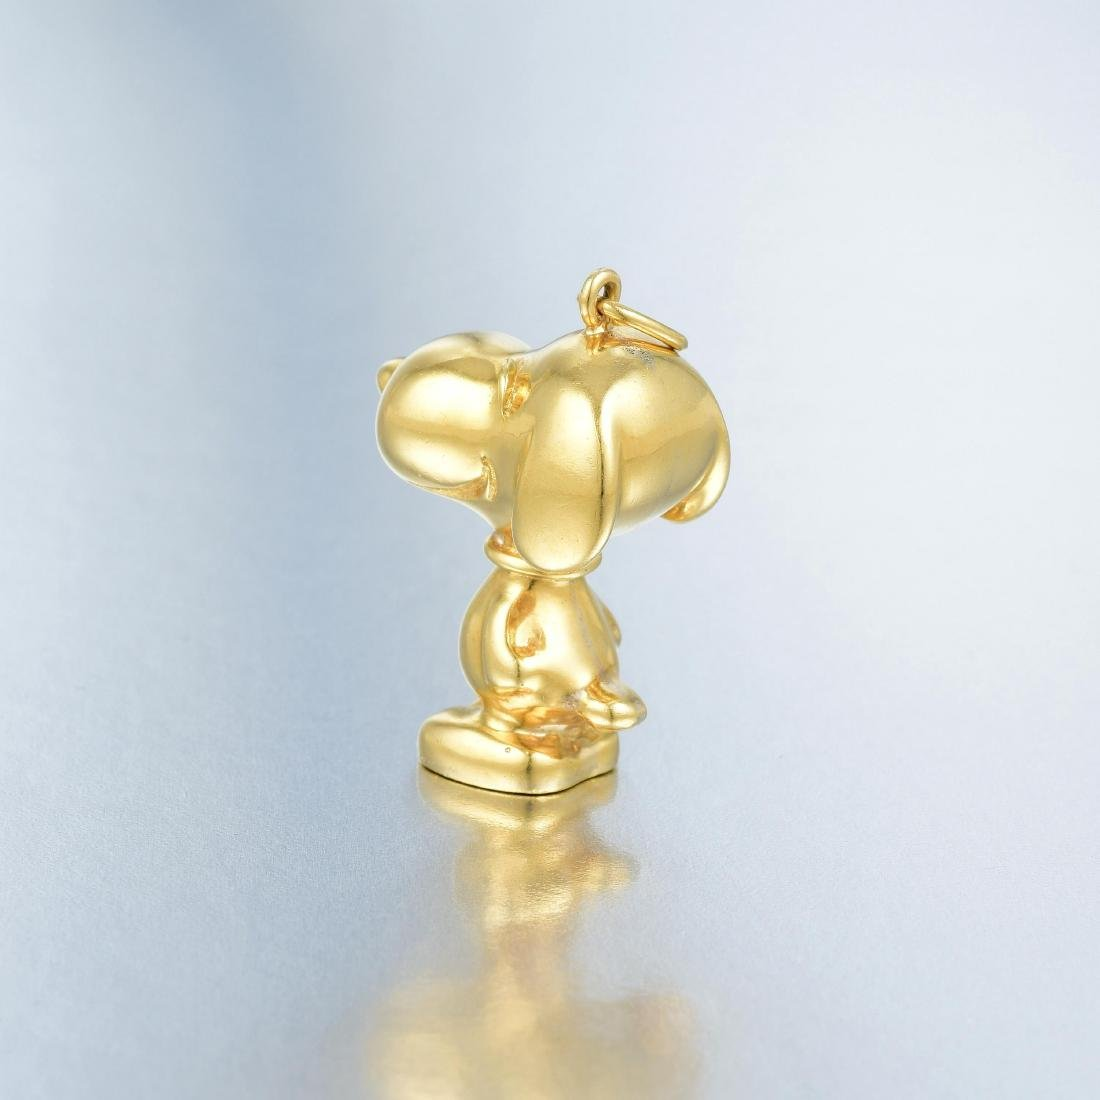 Cartier Gold Snoopy Pendant - 5